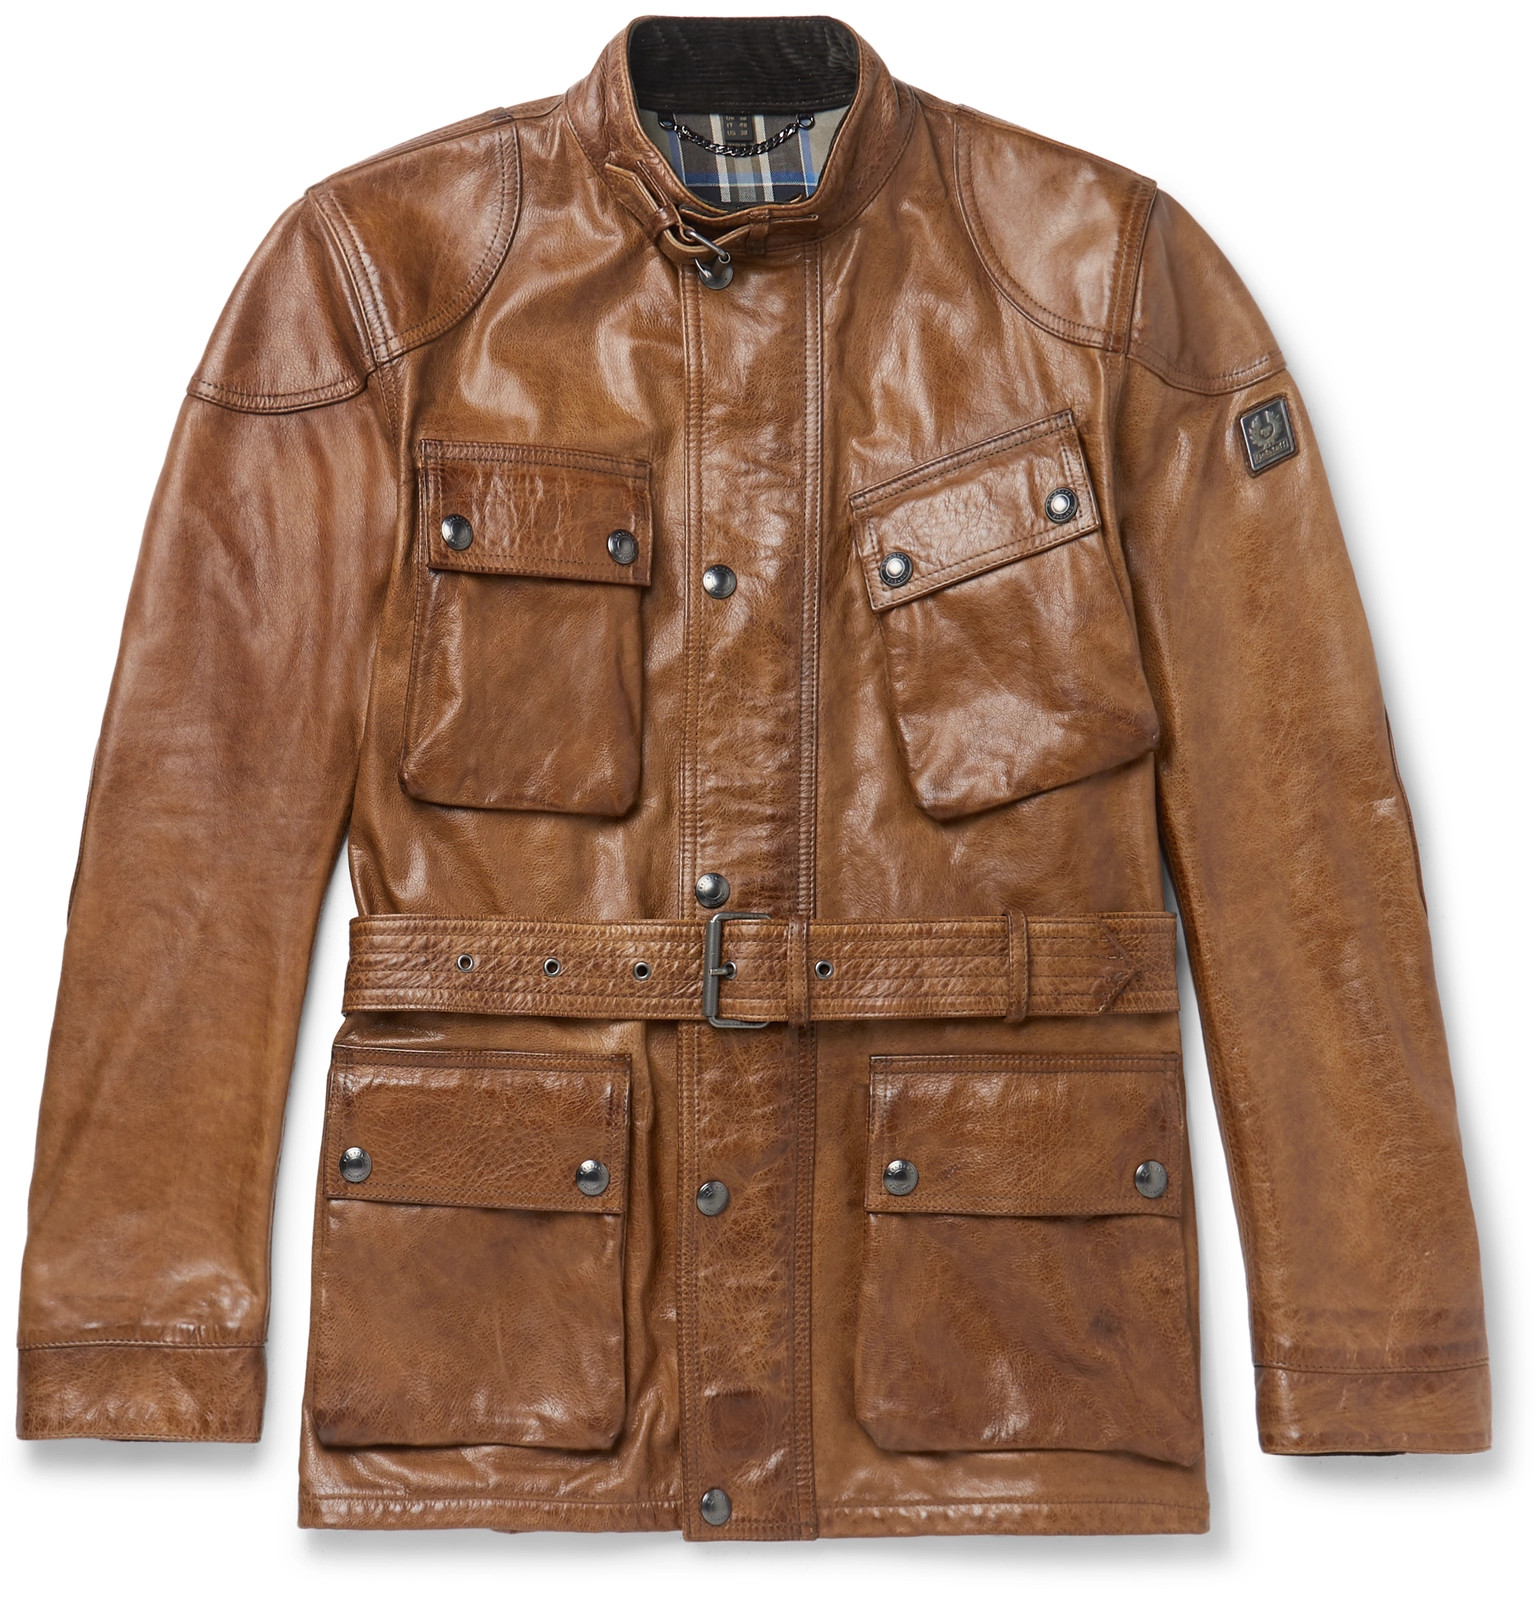 da35189a34 Belstaff - Trialmaster Leather Jacket